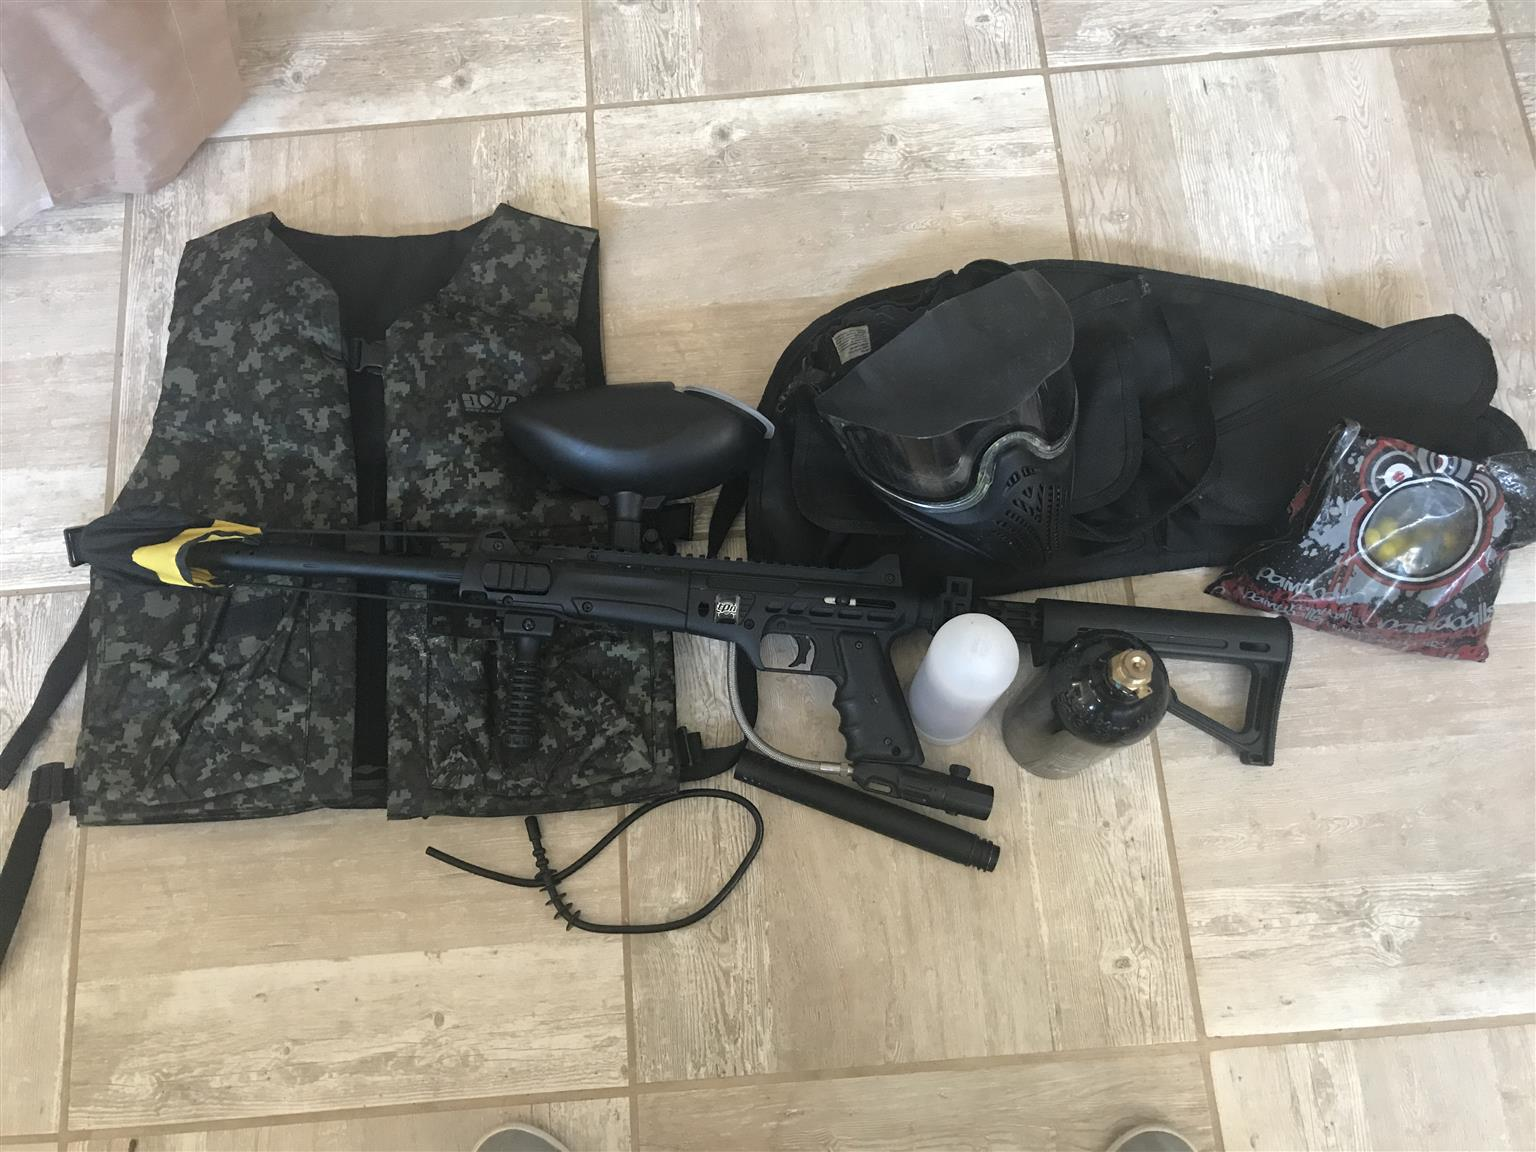 Tippman Paintbal Gun for sale